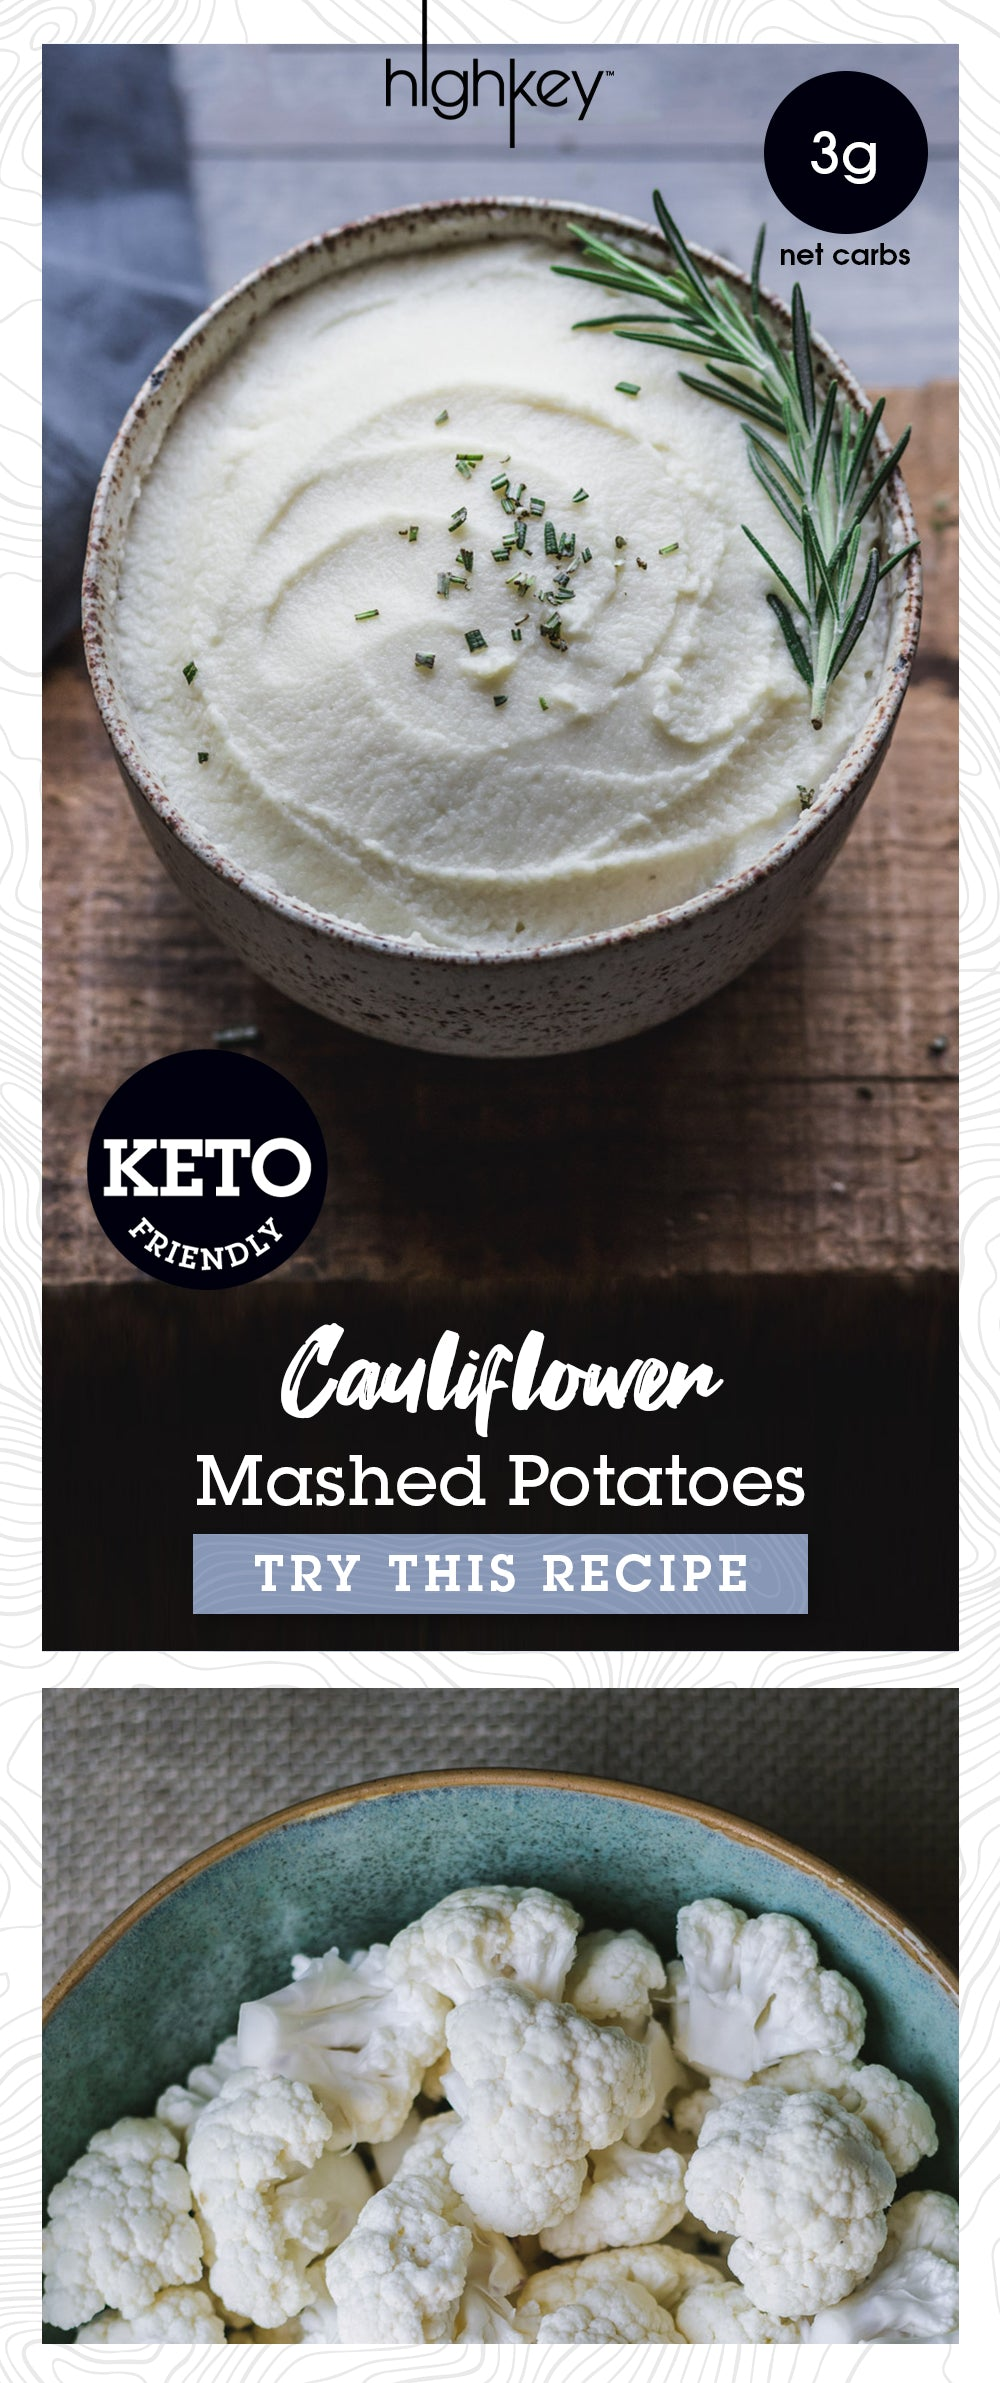 Keto Cauliflower Mashed Potatoes, HighKey Snacks